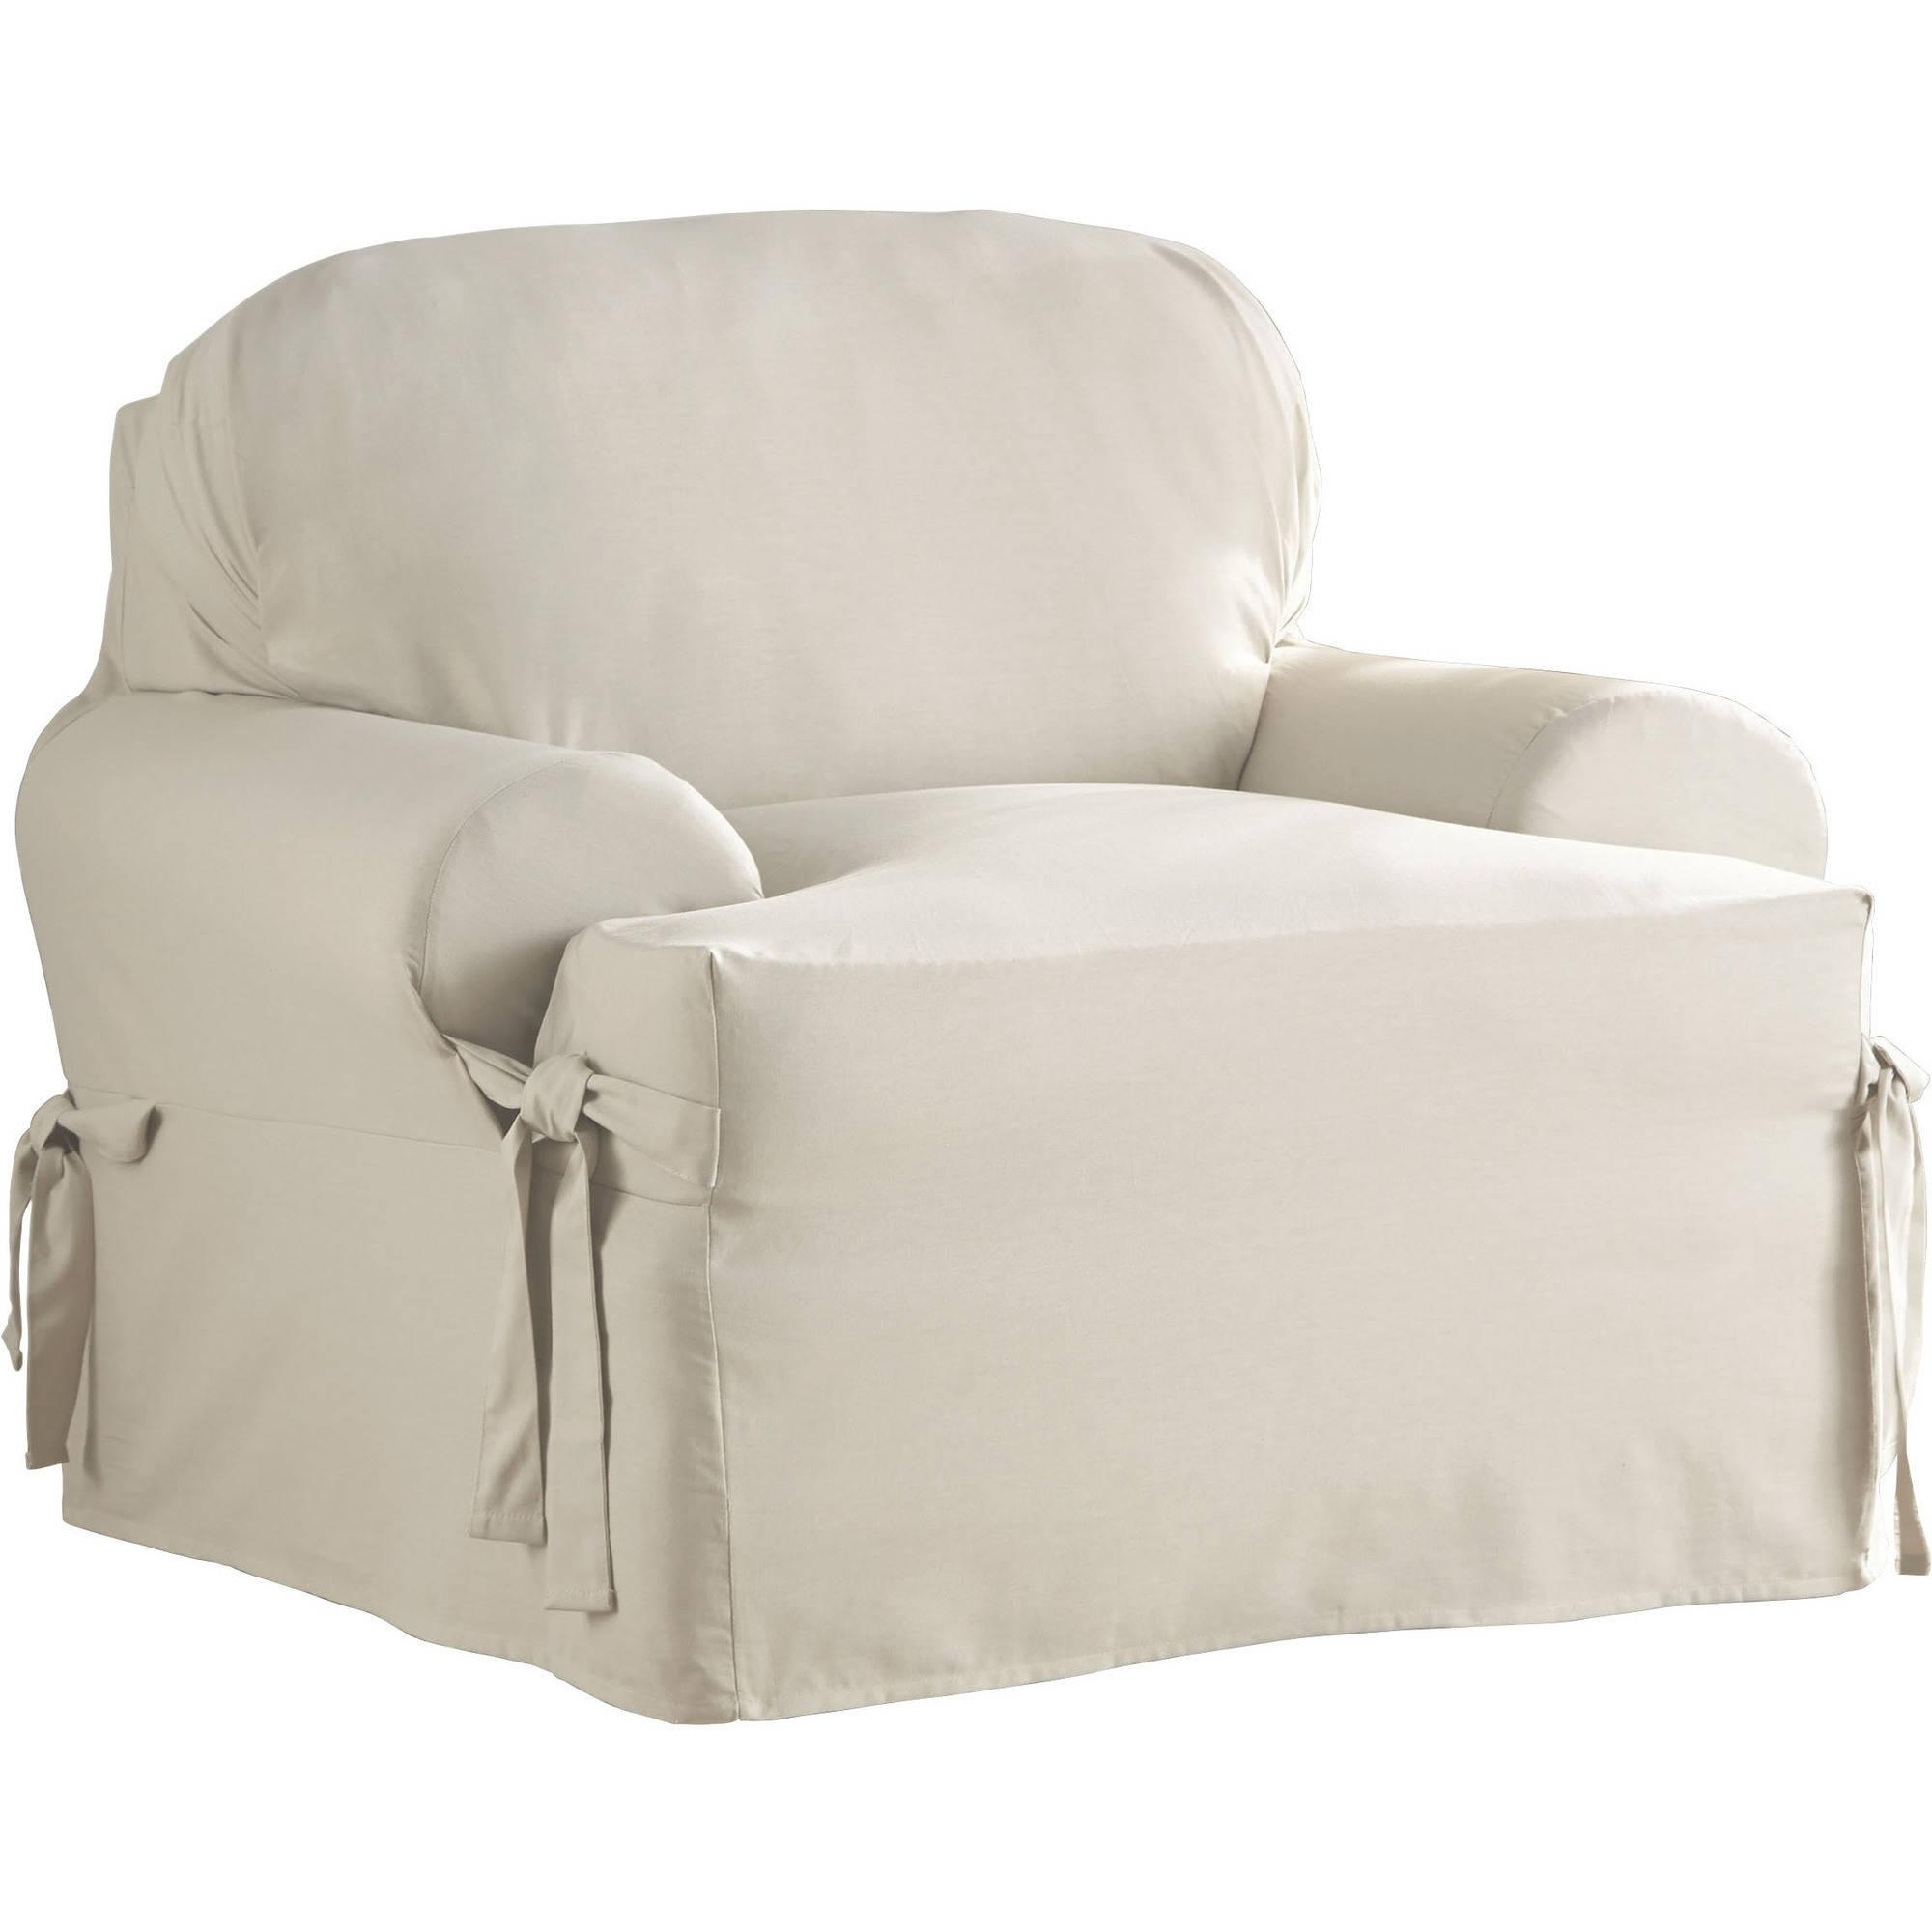 Slipcovers – Walmart For Sofa And Chair Slipcovers (Image 17 of 20)